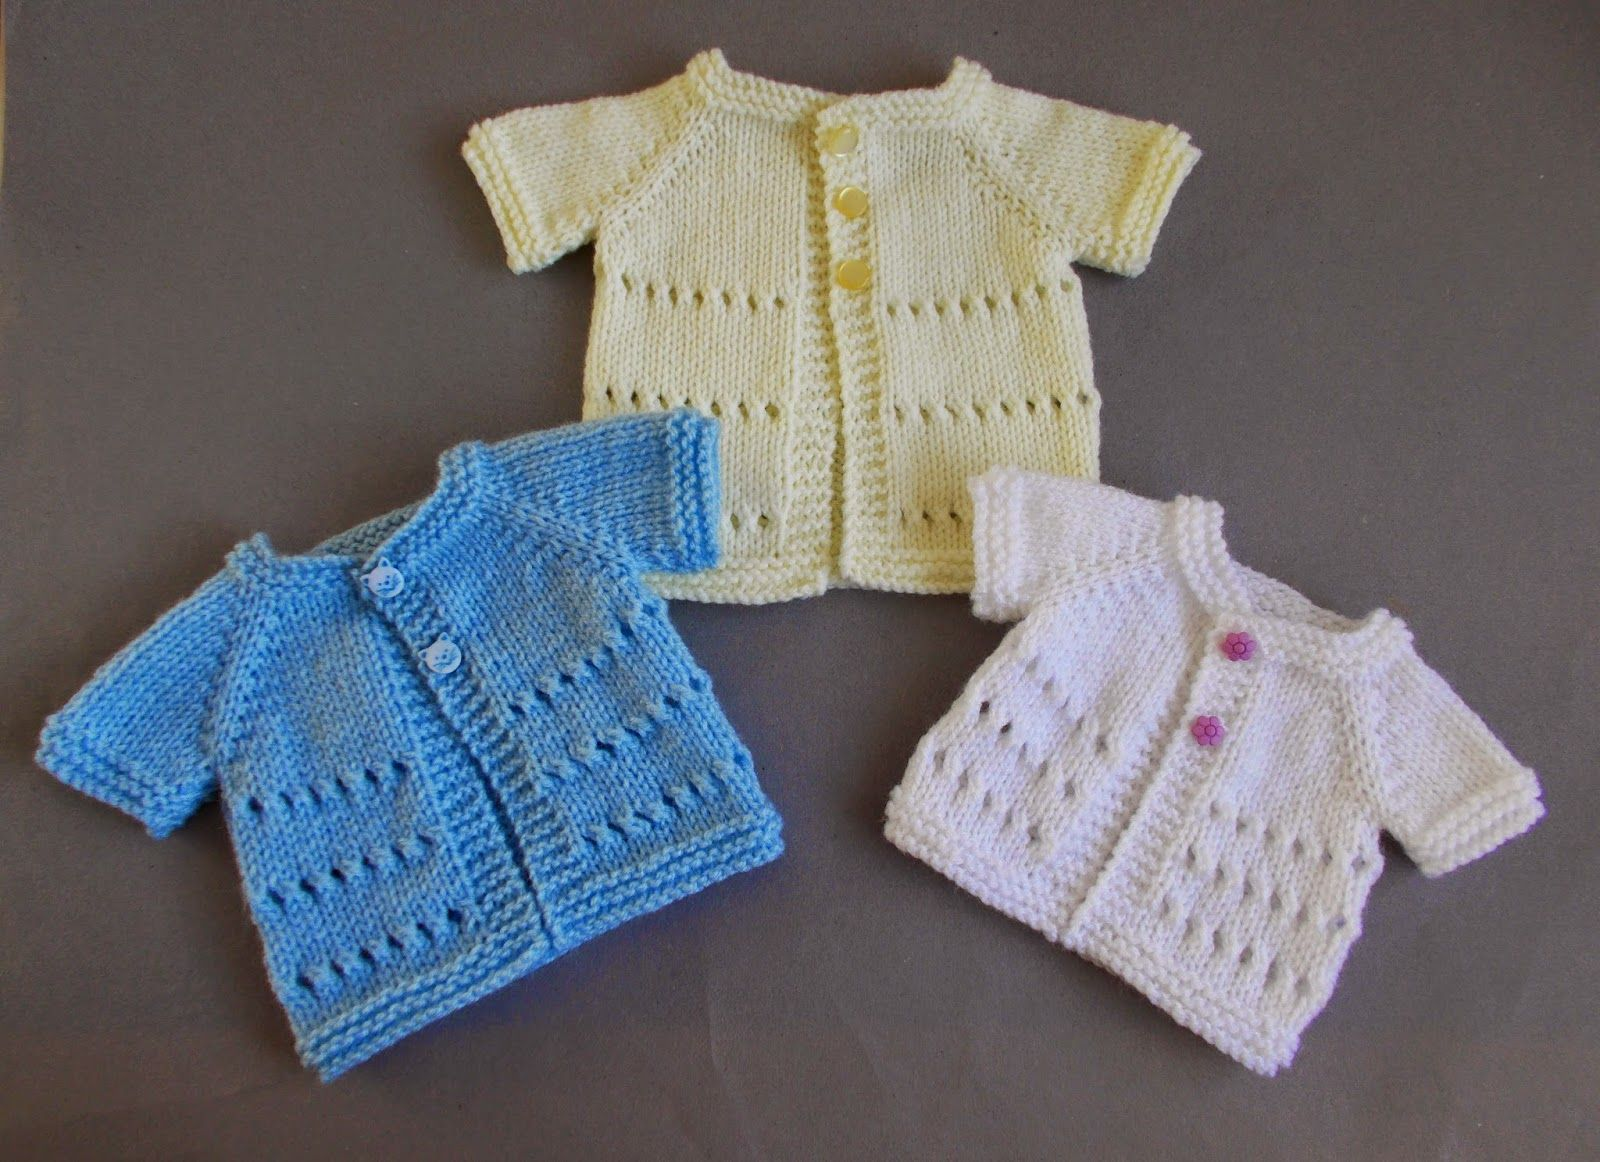 Mariannas lazy daisy days little jay premature baby cardigan this new premature baby design is for boys or girls in three premature sizes little jay premature baby cardigan jackets small premature baby cardi bankloansurffo Images